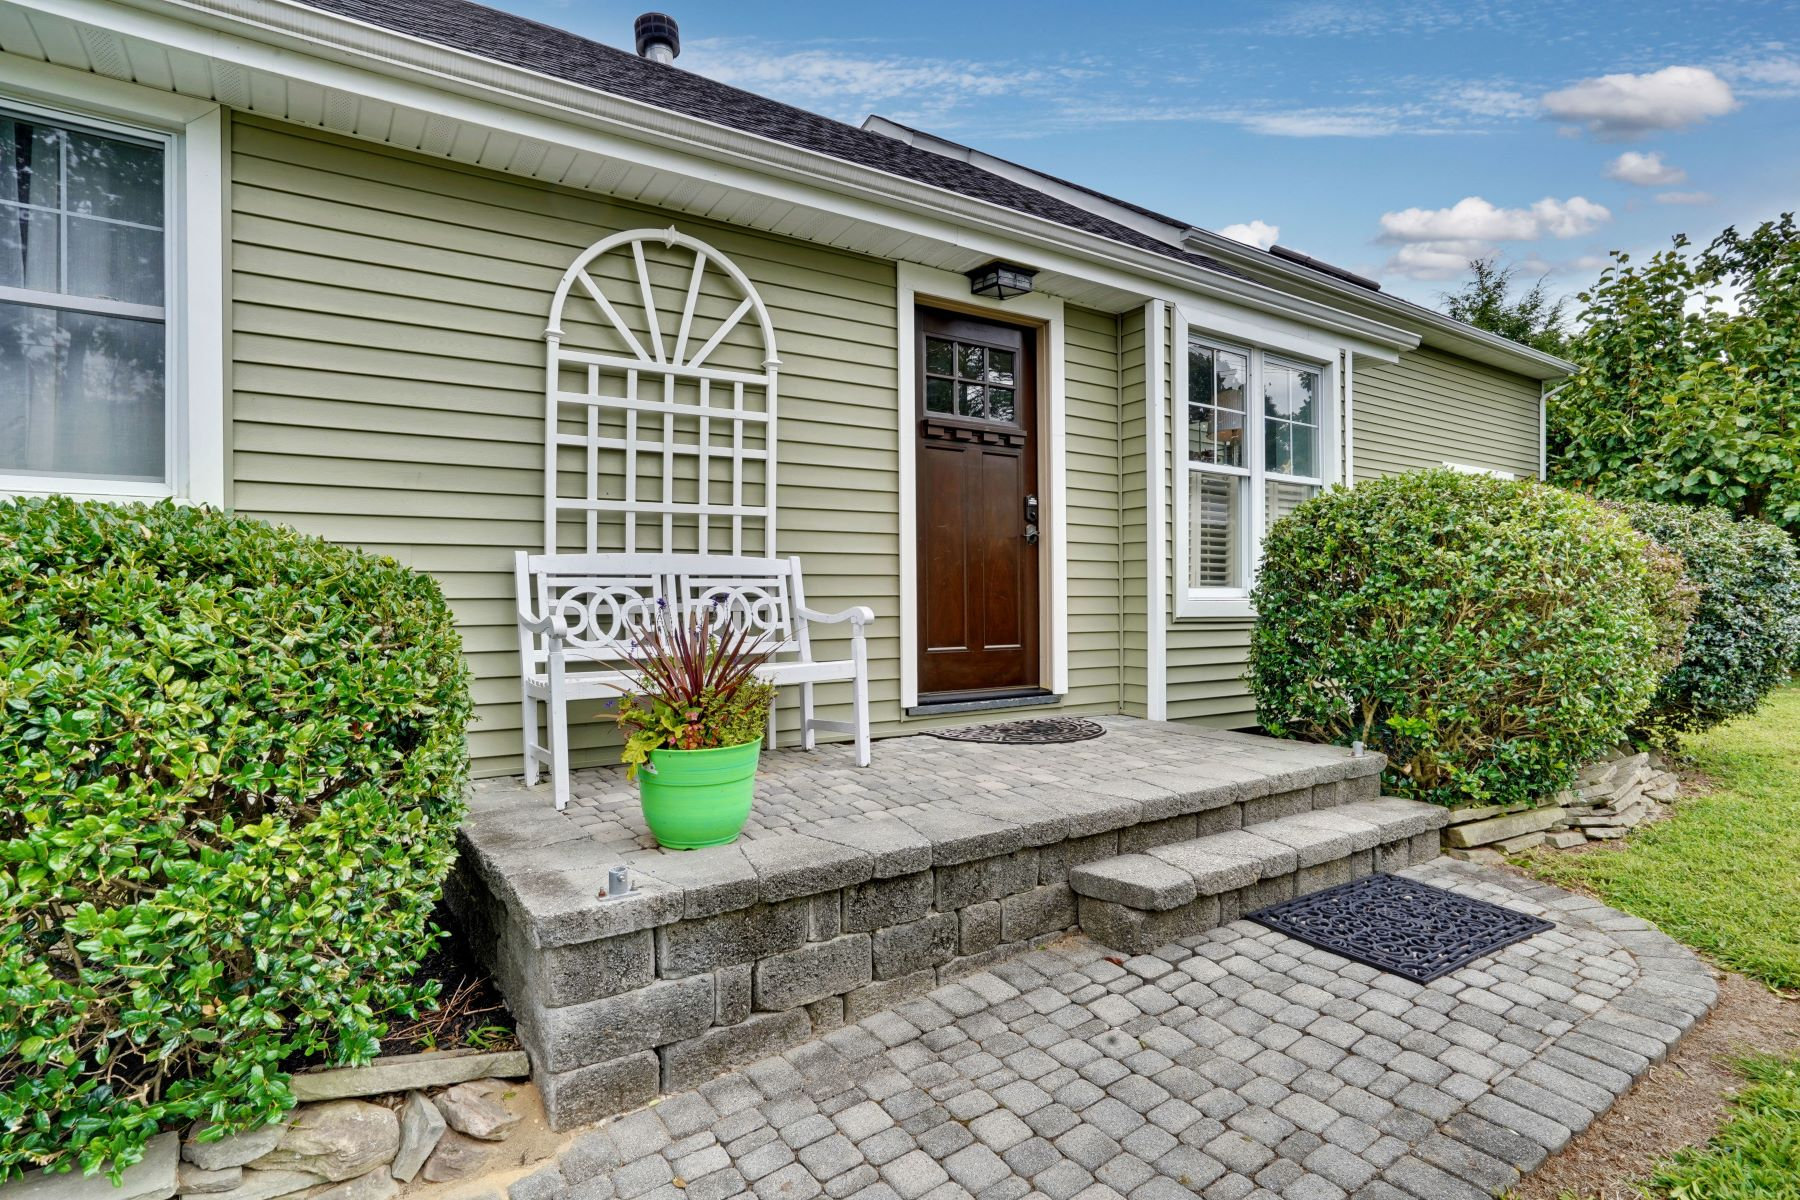 Single Family Homes for Sale at Easy Living in Manasquan Park 2404 Beech Street Wall, New Jersey 08736 United States